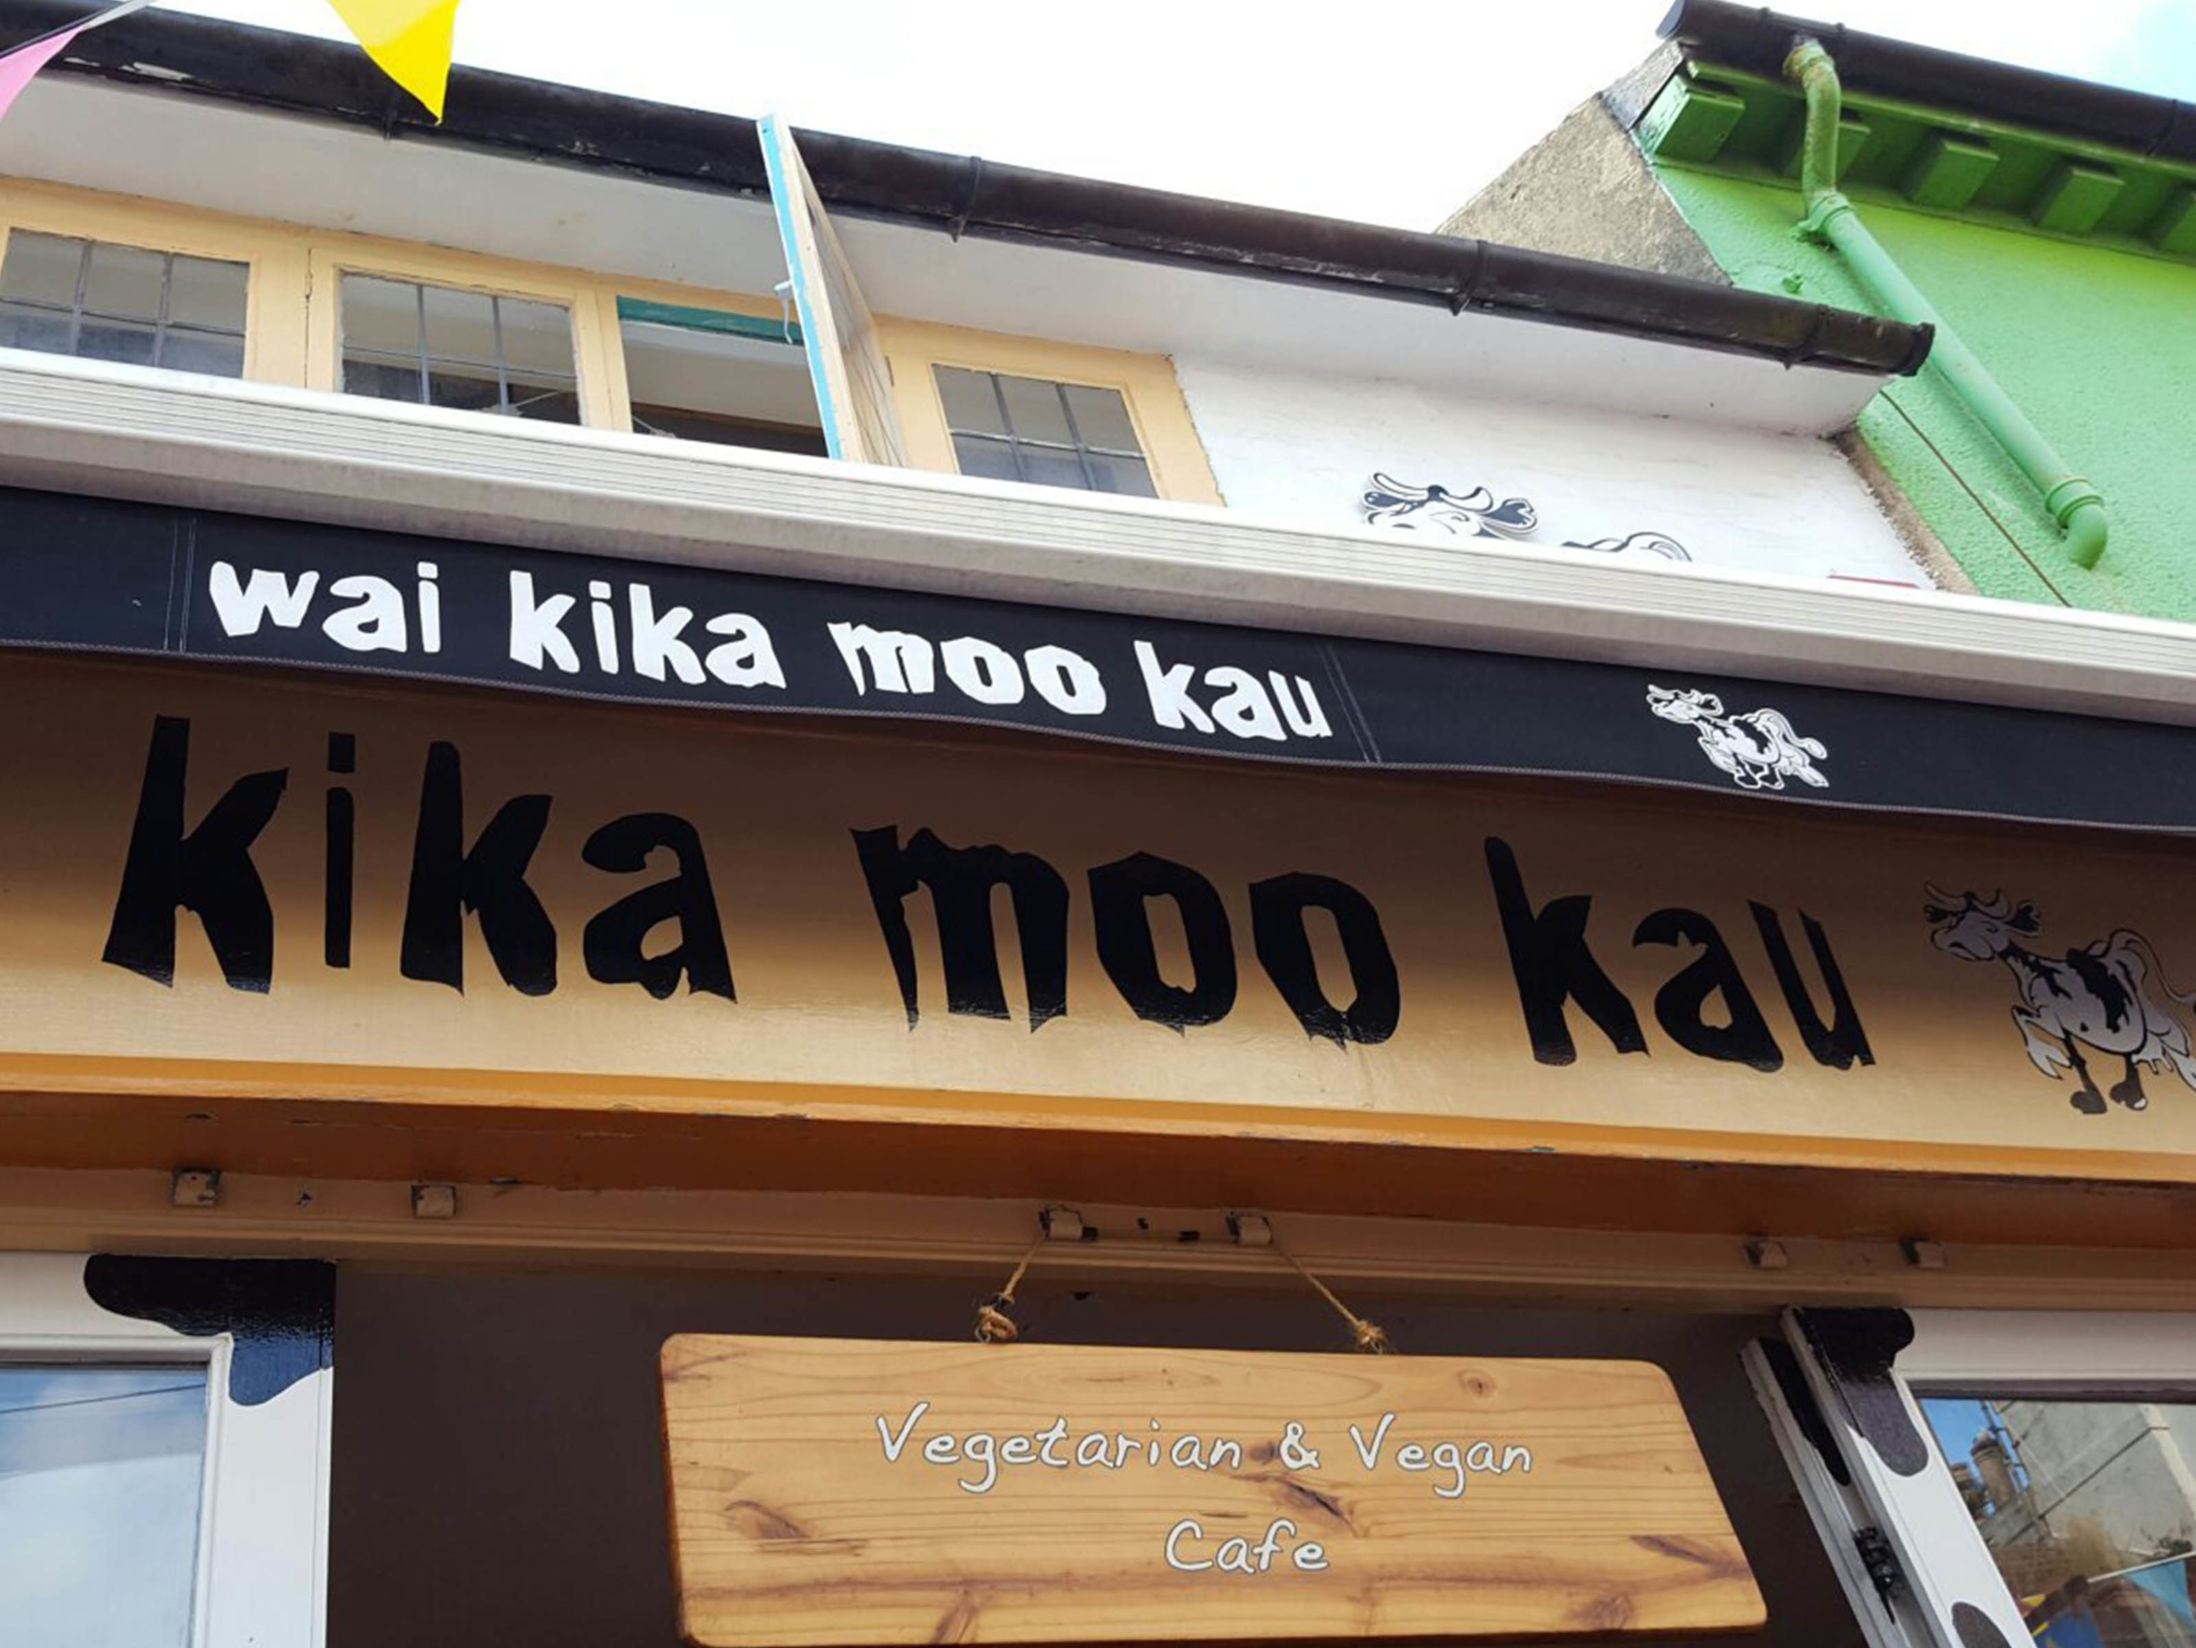 Best Vegan Restaurants in Brighton - Wai Kika Moo Kau